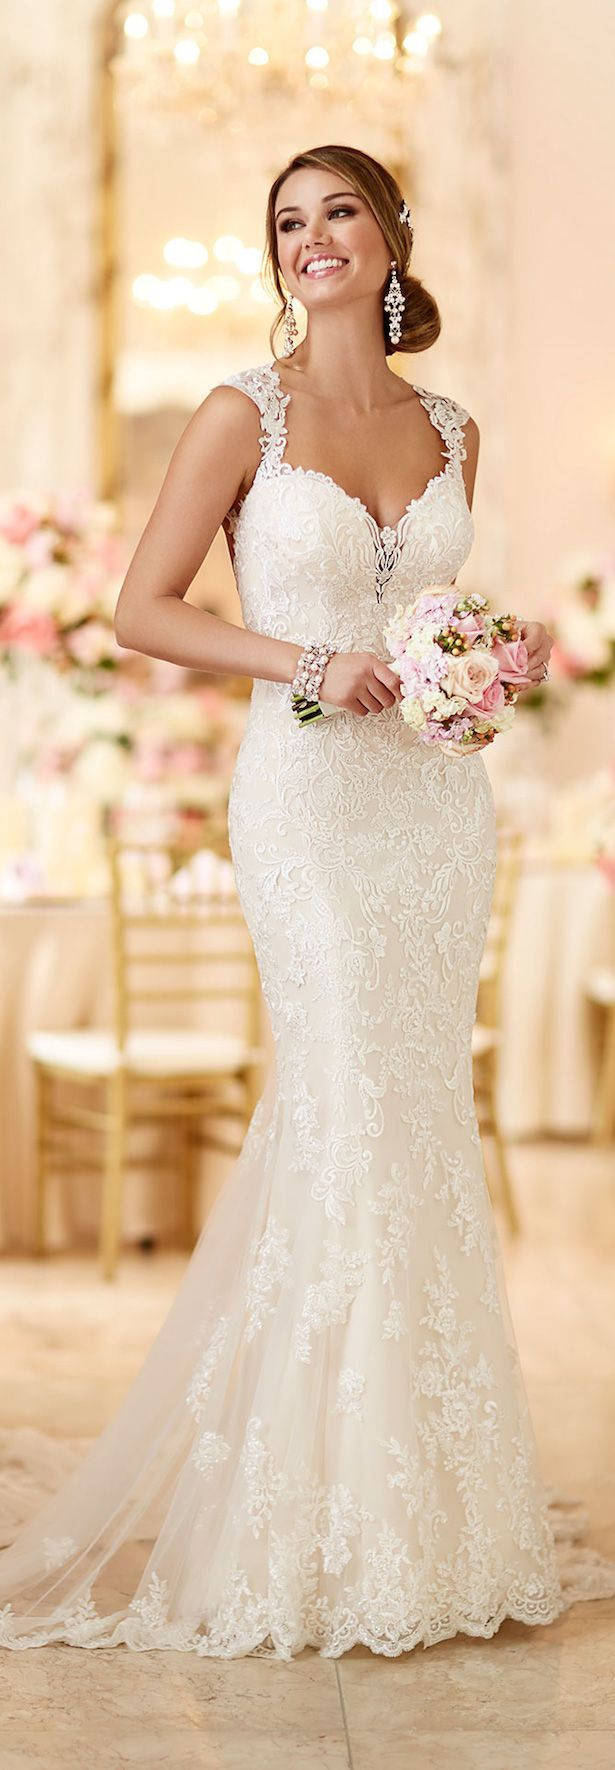 Stella York Spring 2016 Bridal Collection - Belle The Magazine-I've got the most amazing lineup of stop you in your tracks bridal gowns by one of our favorite bridal brands, Stella York.